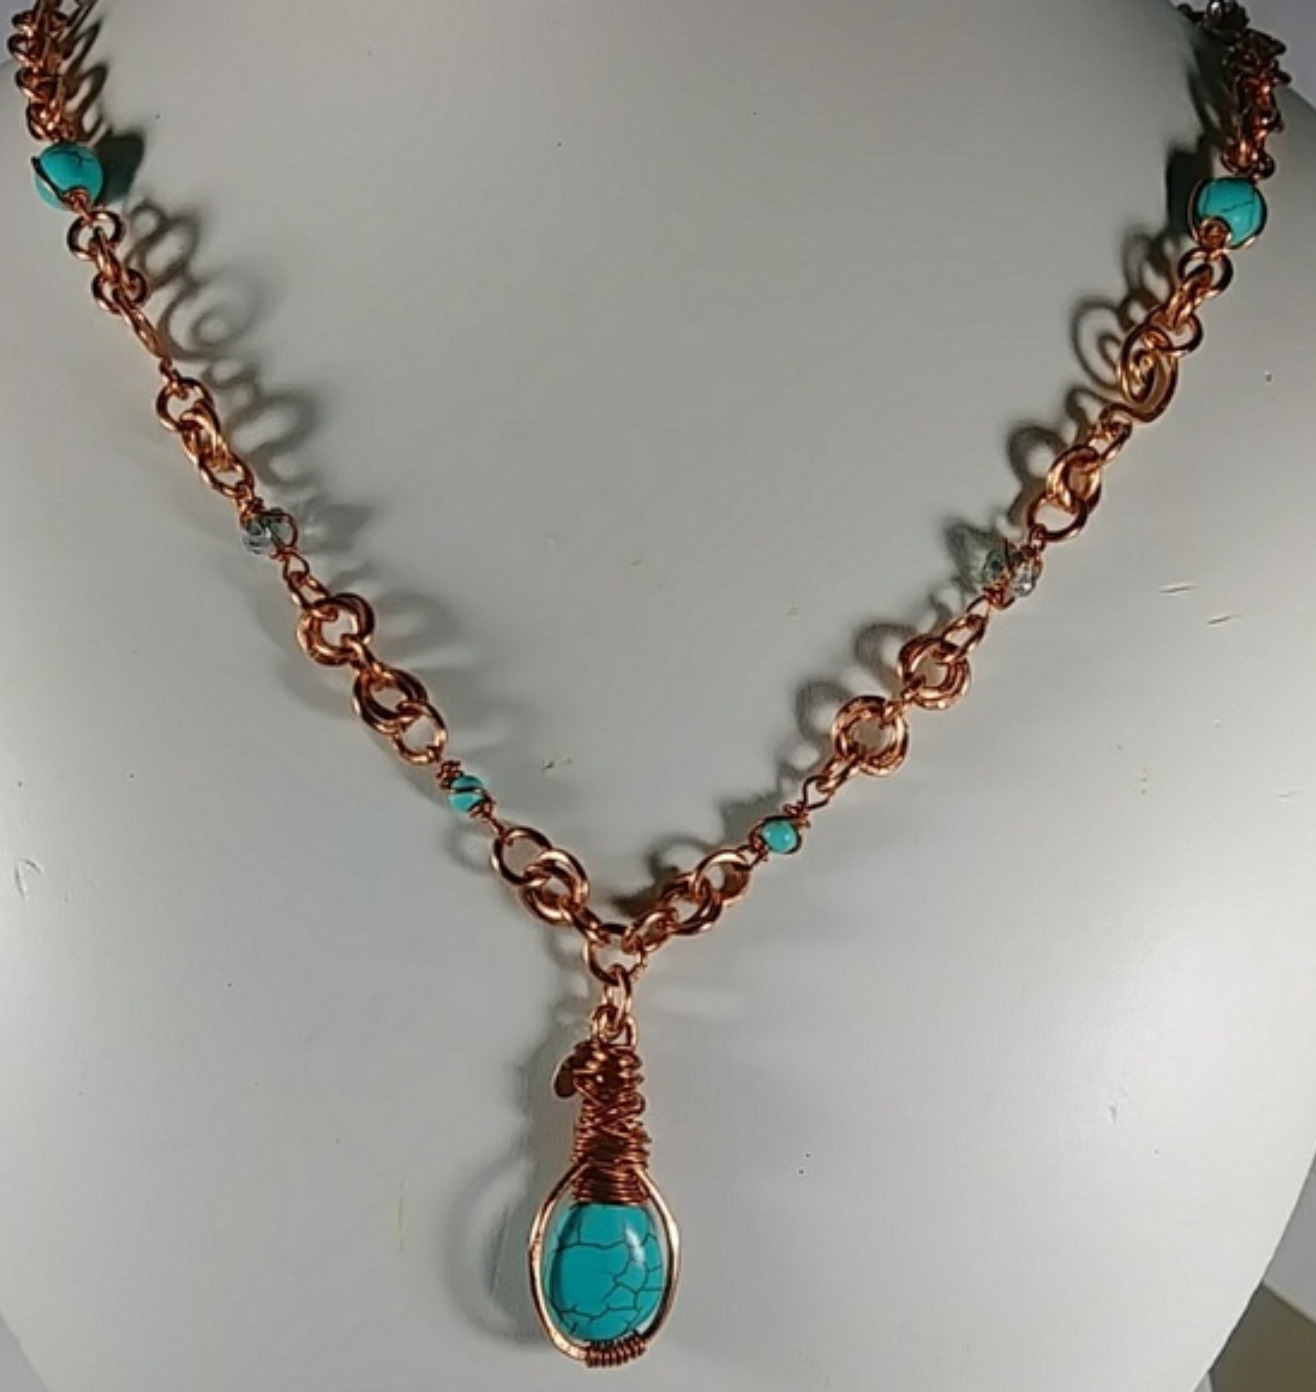 (304 -NCK) - Description: Copper Wire, Beads, Turquoise Howlite (Gemstones) , Faceted Glass Beads, Hook Closure  Dimension: 25 Inches (L)